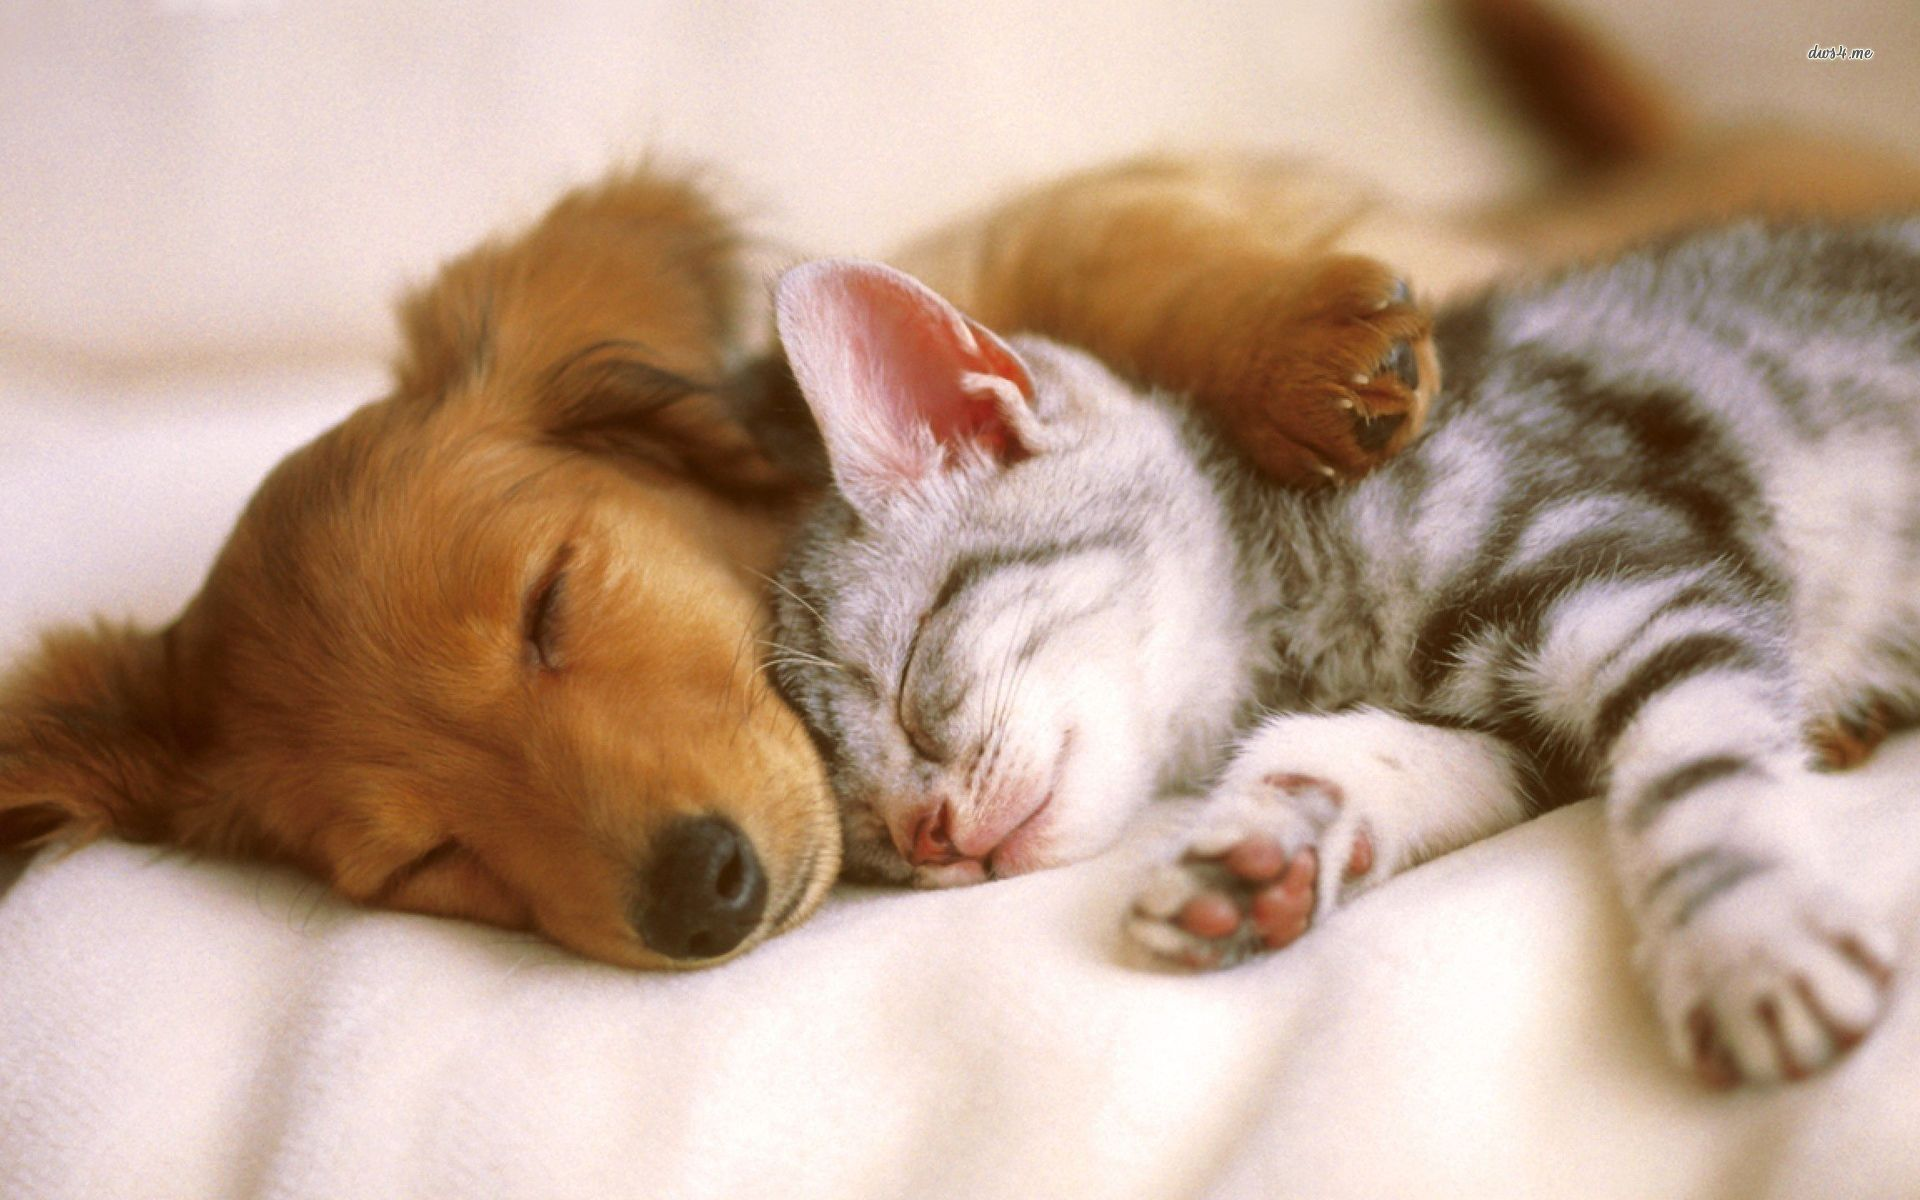 Kitten And Puppy Wallpapers Hd Resolution Cute Puppies And Kittens Kittens And Puppies Kittens Cutest